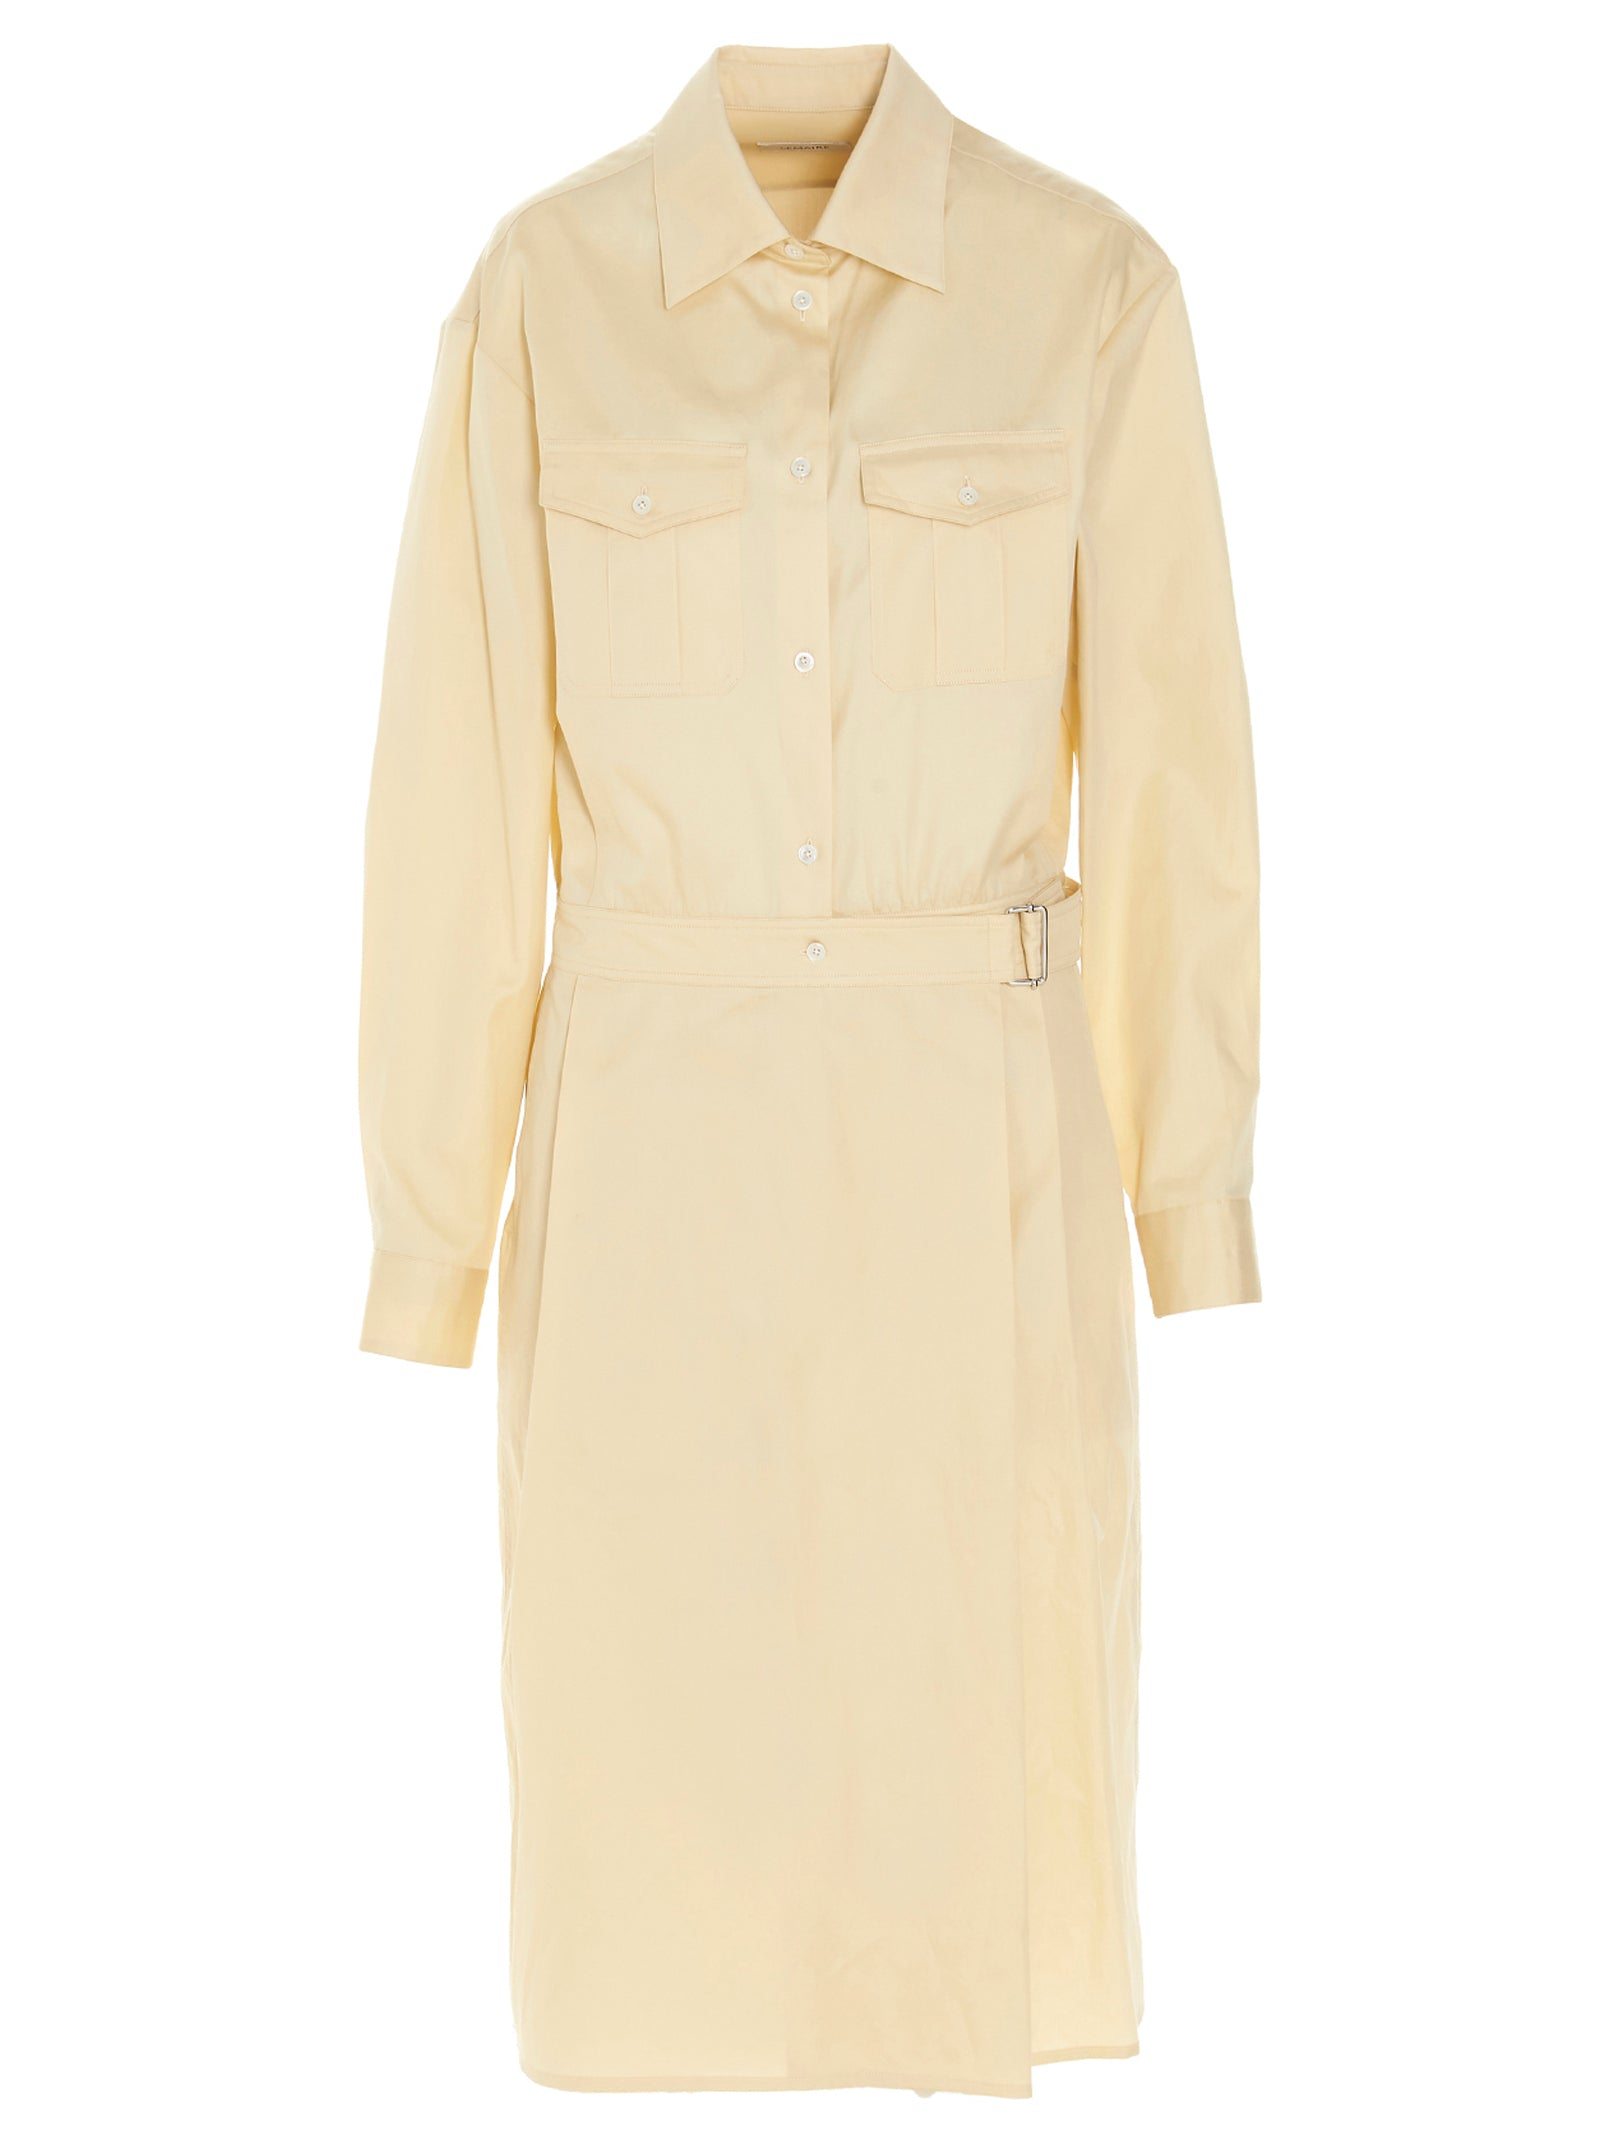 Lemaire Midi dresses LEMAIRE BELTED SHIRT DRESS